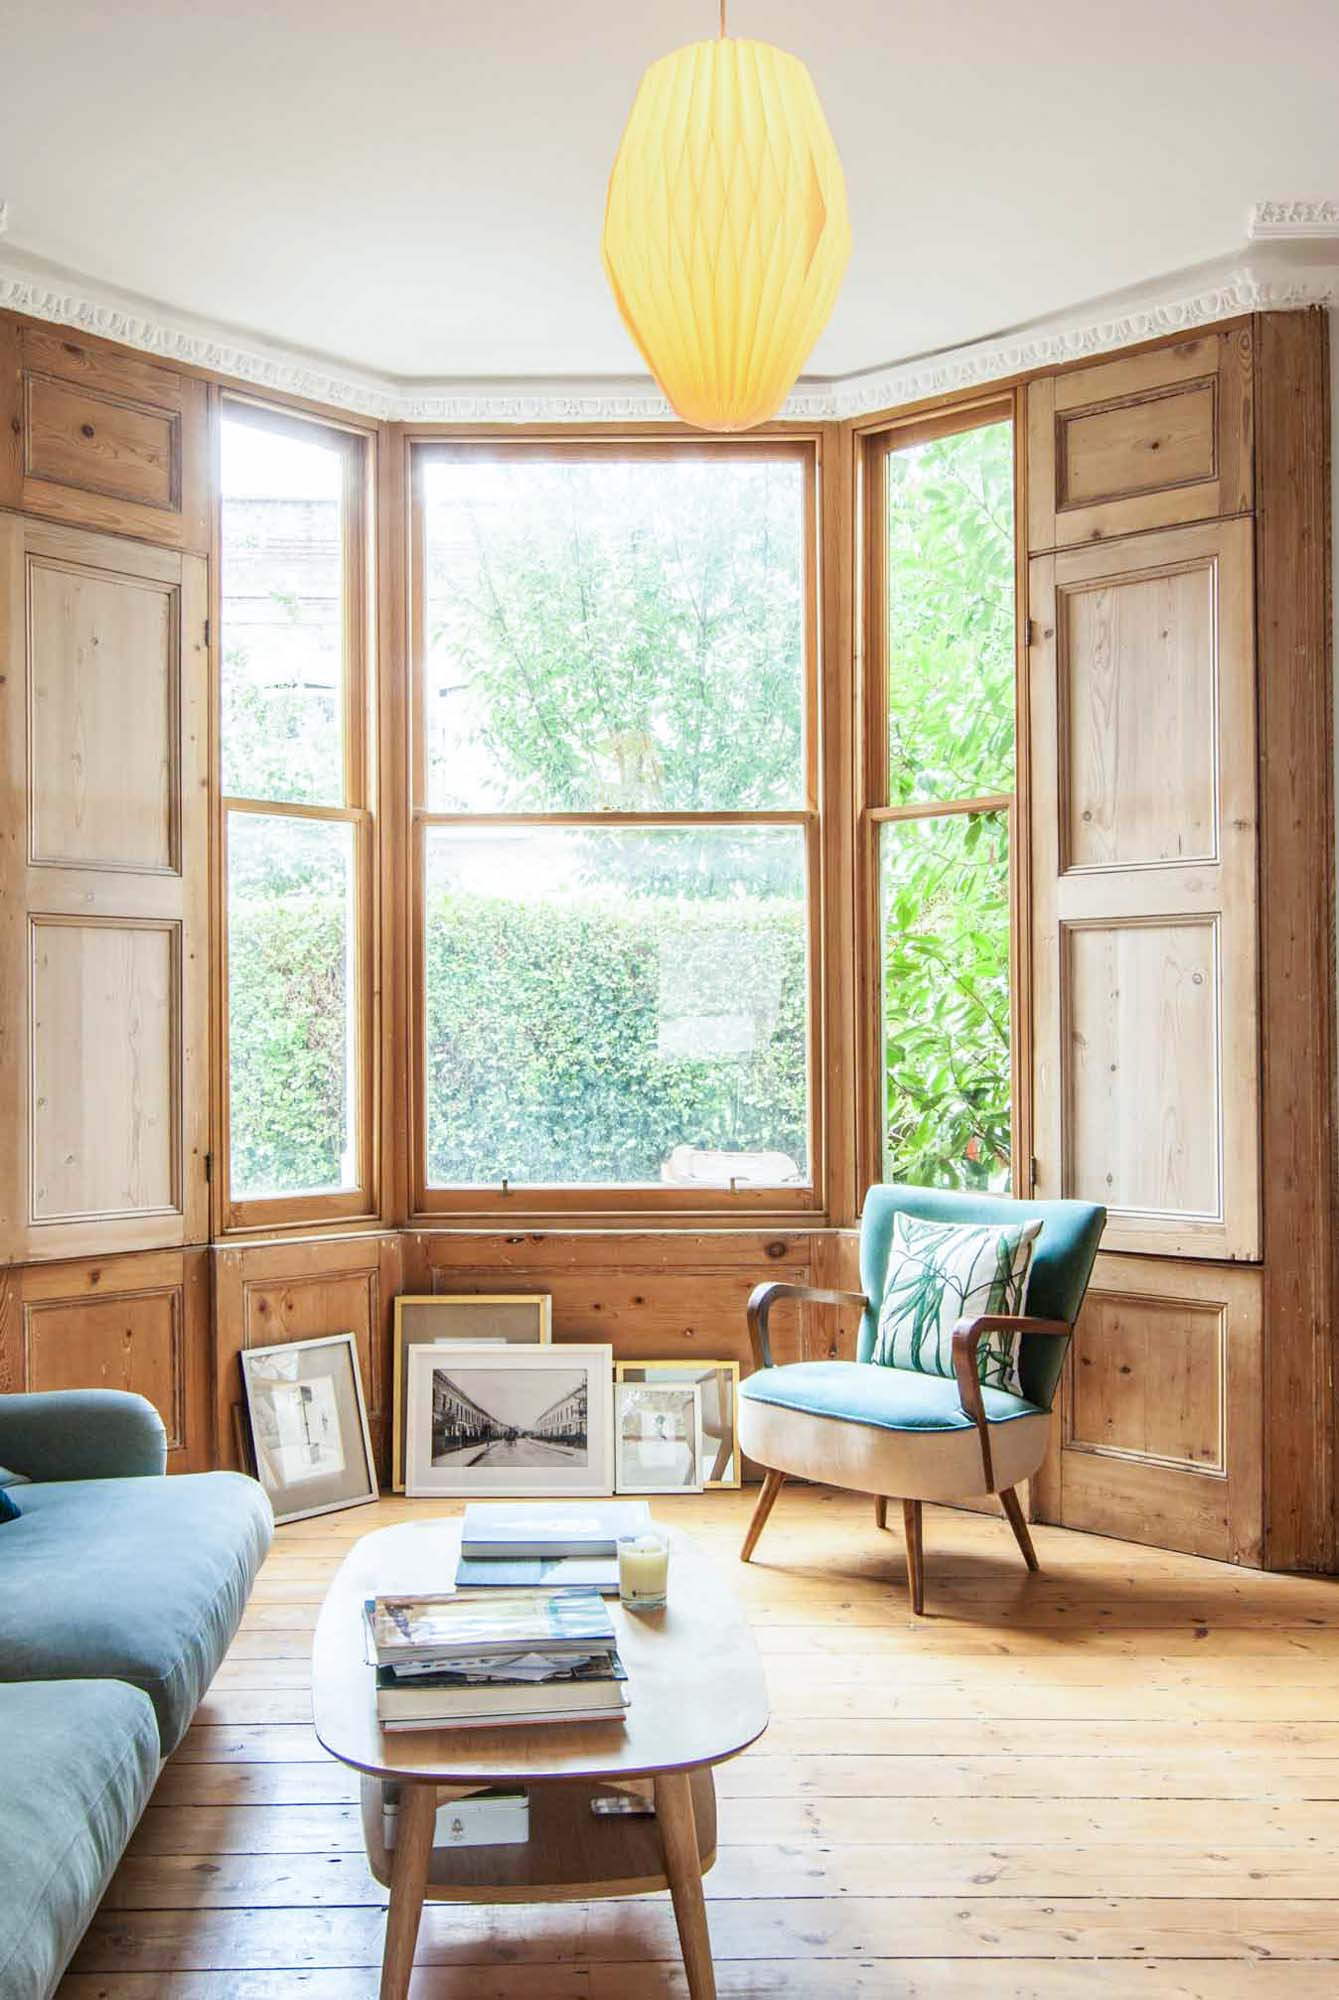 Photographer's House: Beautiful timber room with large windows allowing plenty of light to come through. Green sofa and armchair fitting with the timber as well as the greenery outside.